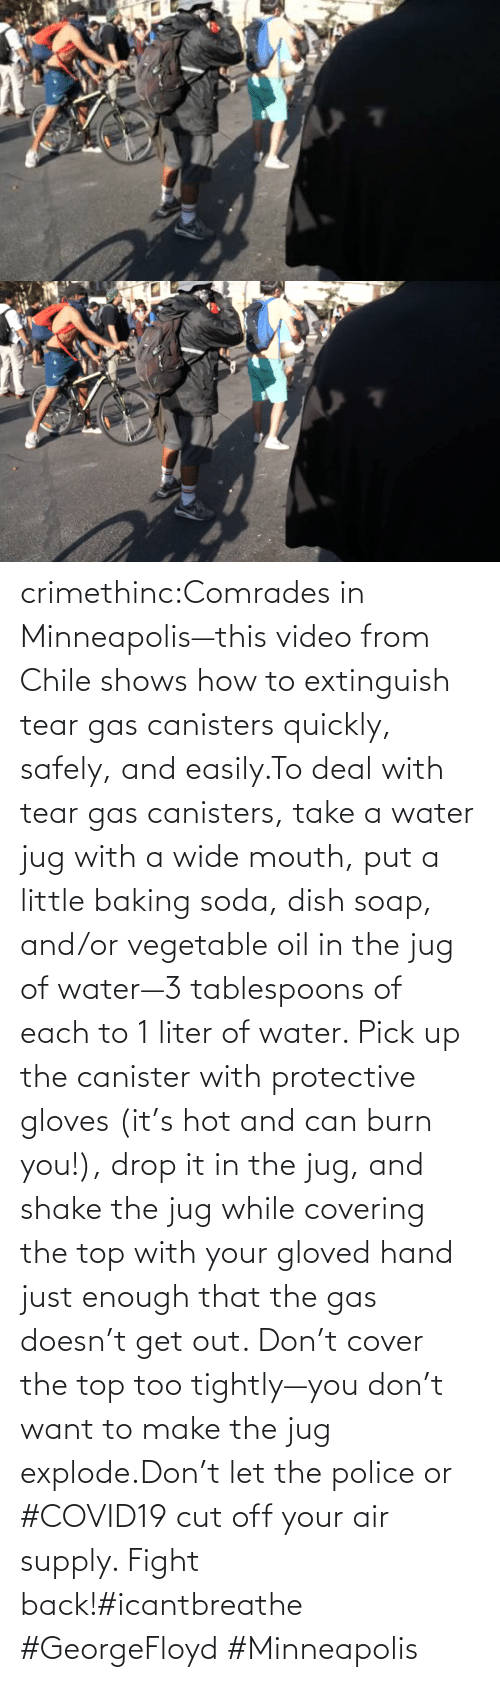 Police: crimethinc:Comrades in Minneapolis—this video from Chile shows how to extinguish tear gas canisters quickly, safely, and easily.To deal with tear gas canisters, take a water jug with a wide mouth, put a little baking soda, dish soap, and/or vegetable oil in the jug of water—3 tablespoons of each to 1 liter of water. Pick up the canister with protective gloves (it's hot and can burn you!), drop it in the jug, and shake the jug while covering the top with your gloved hand just enough that the gas doesn't get out. Don't cover the top too tightly—you don't want to make the jug explode.Don't let the police or #COVID19 cut off your air supply. Fight back!#icantbreathe #GeorgeFloyd #Minneapolis